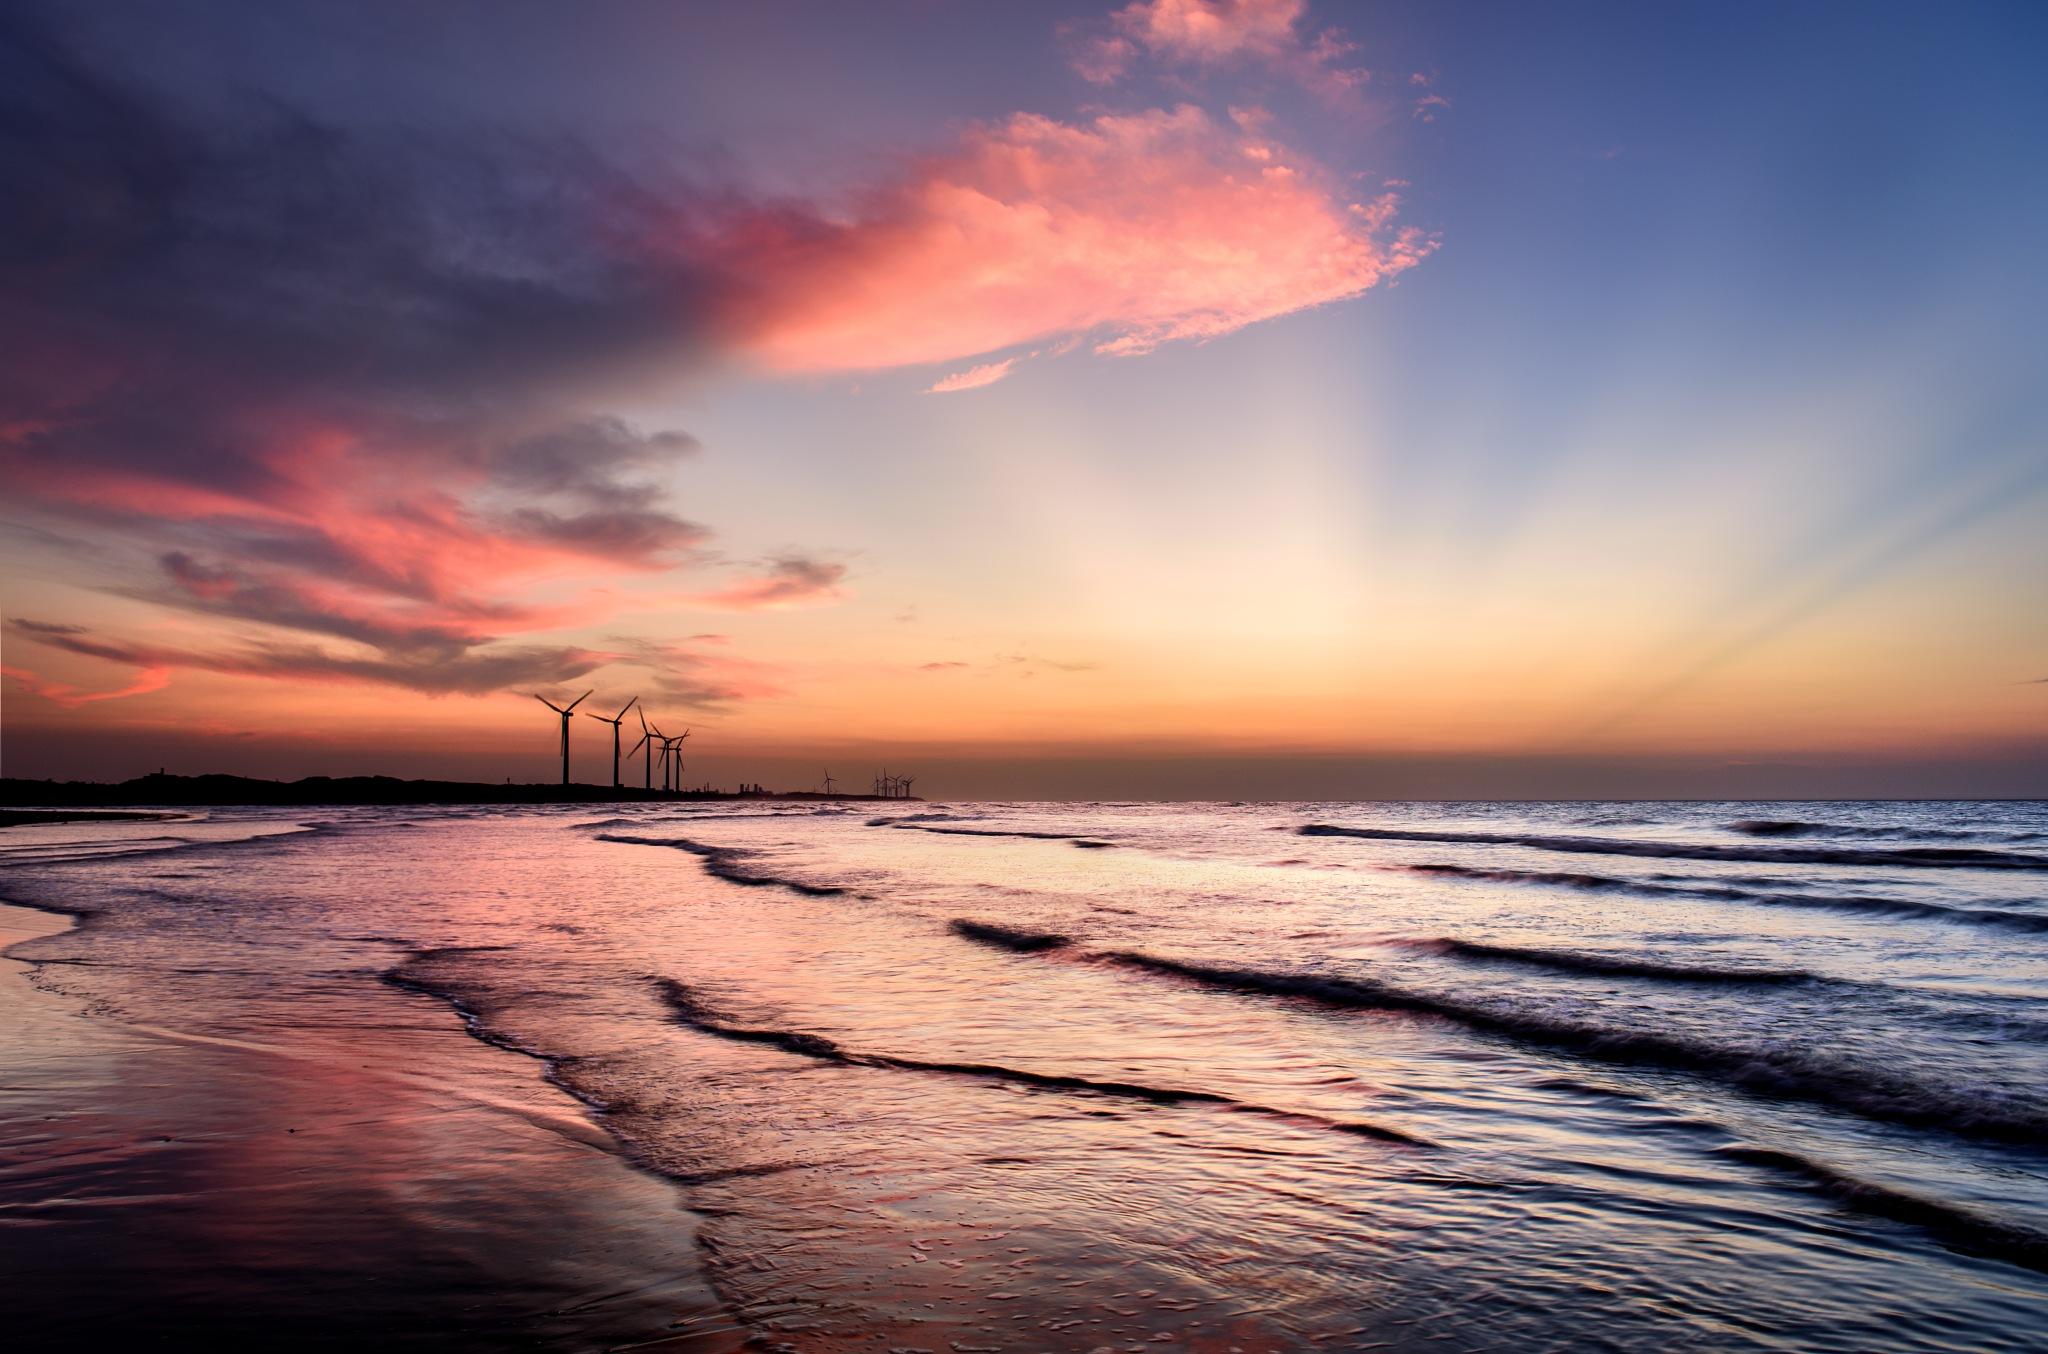 Sunset at the Beach by pslee